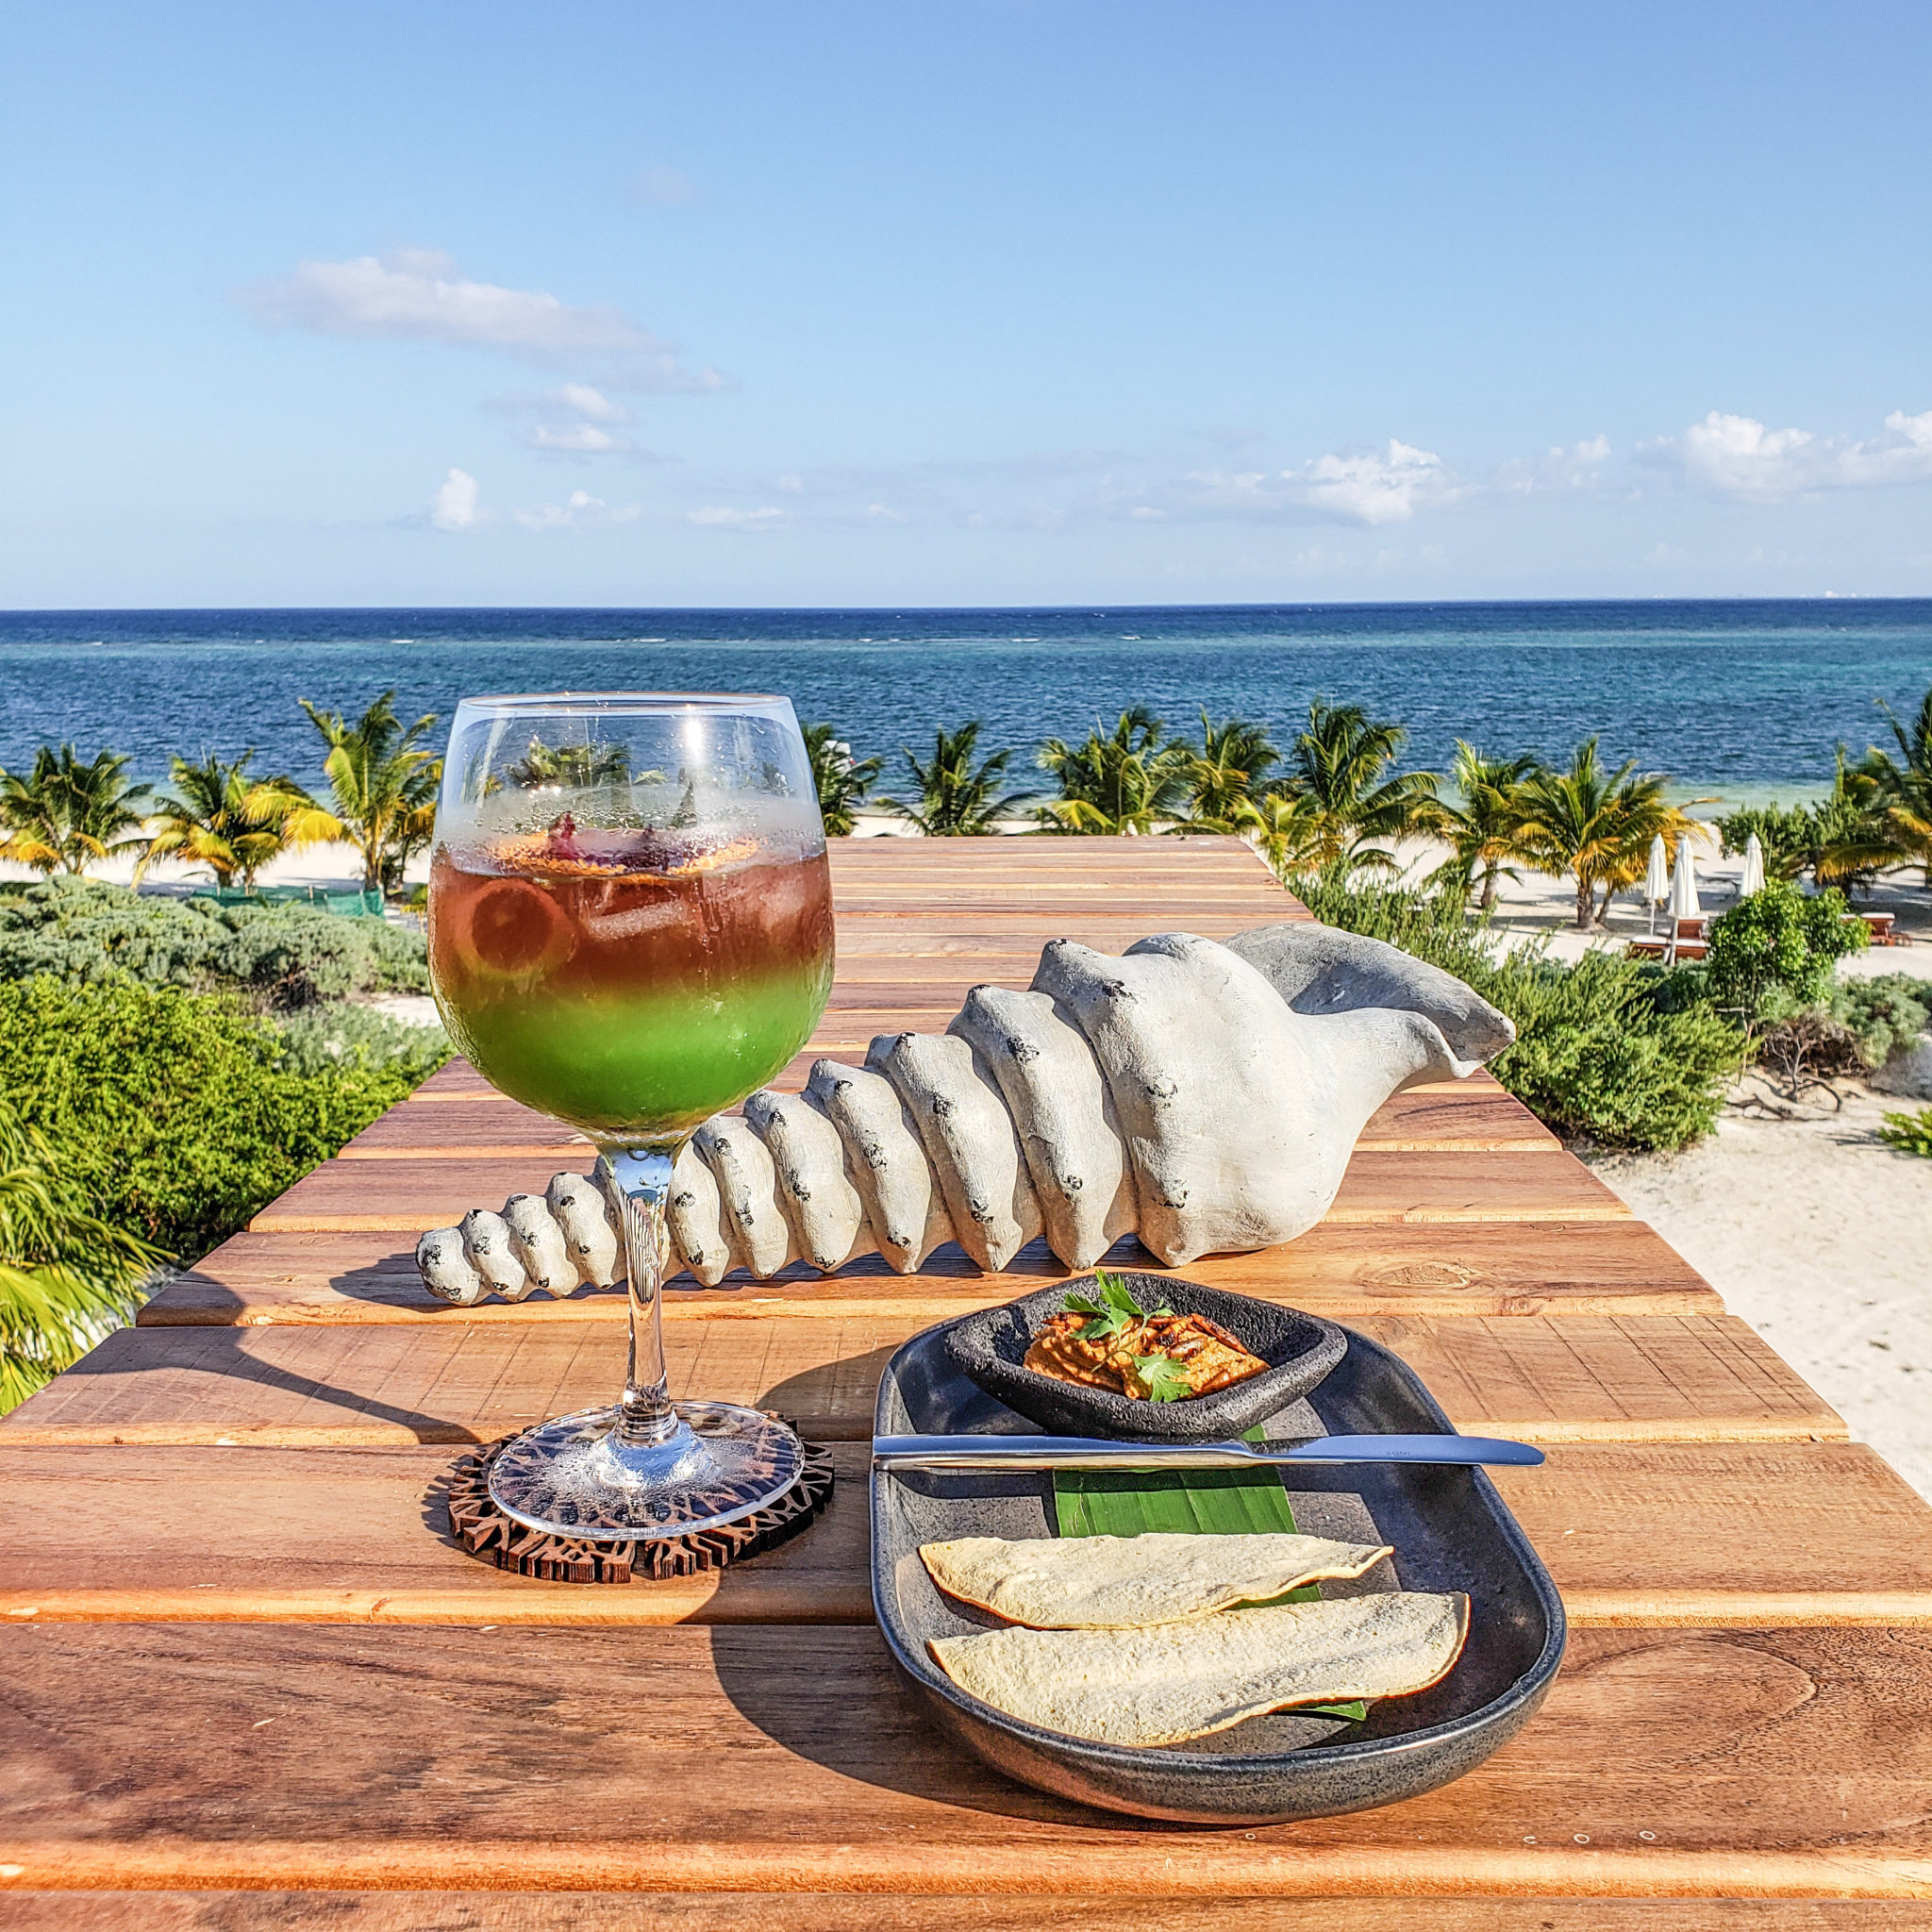 Island Adventure Meets Irresistible Relaxation at the Chablé Maroma Resort in Riviera Maya